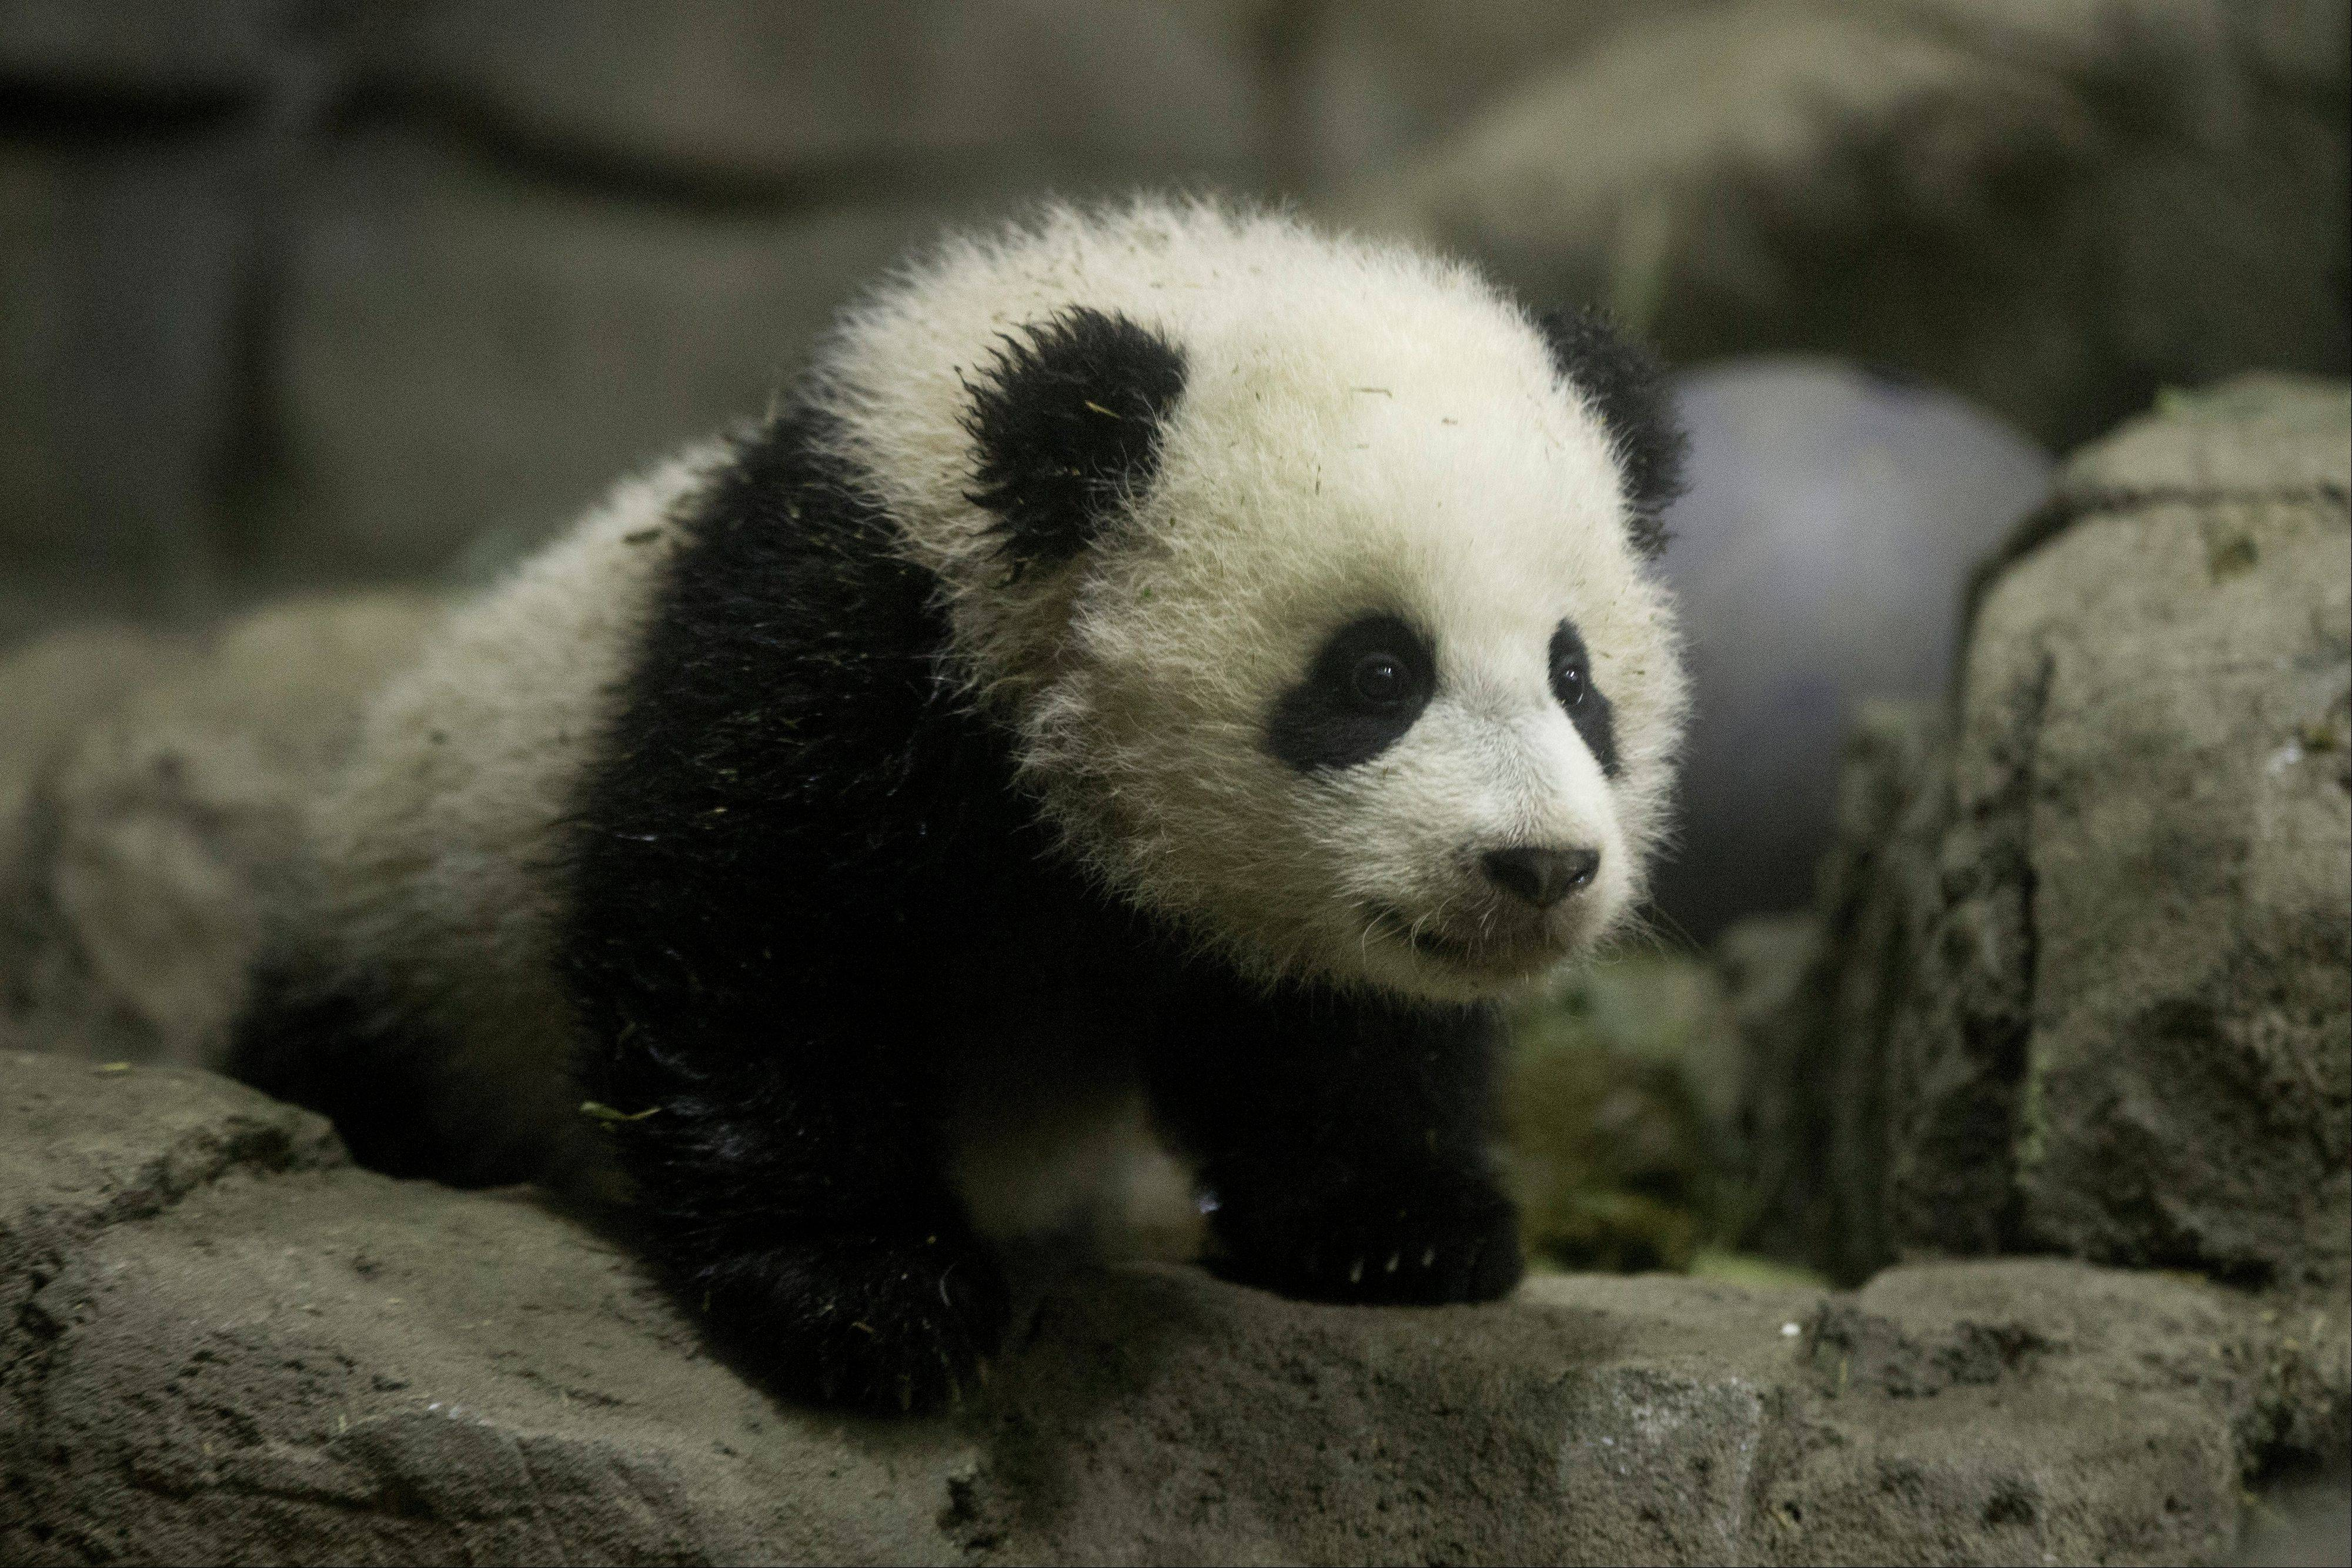 Bao Bao, the four and a half month old giant panda, makes her public debut at an indoor habitat at the National Zoo in Washington Monday. Bao Bao, who now weighs 16.9 pounds, was born to the zoo's female giant panda Mei Xiang and male giant panda Tian Tian.